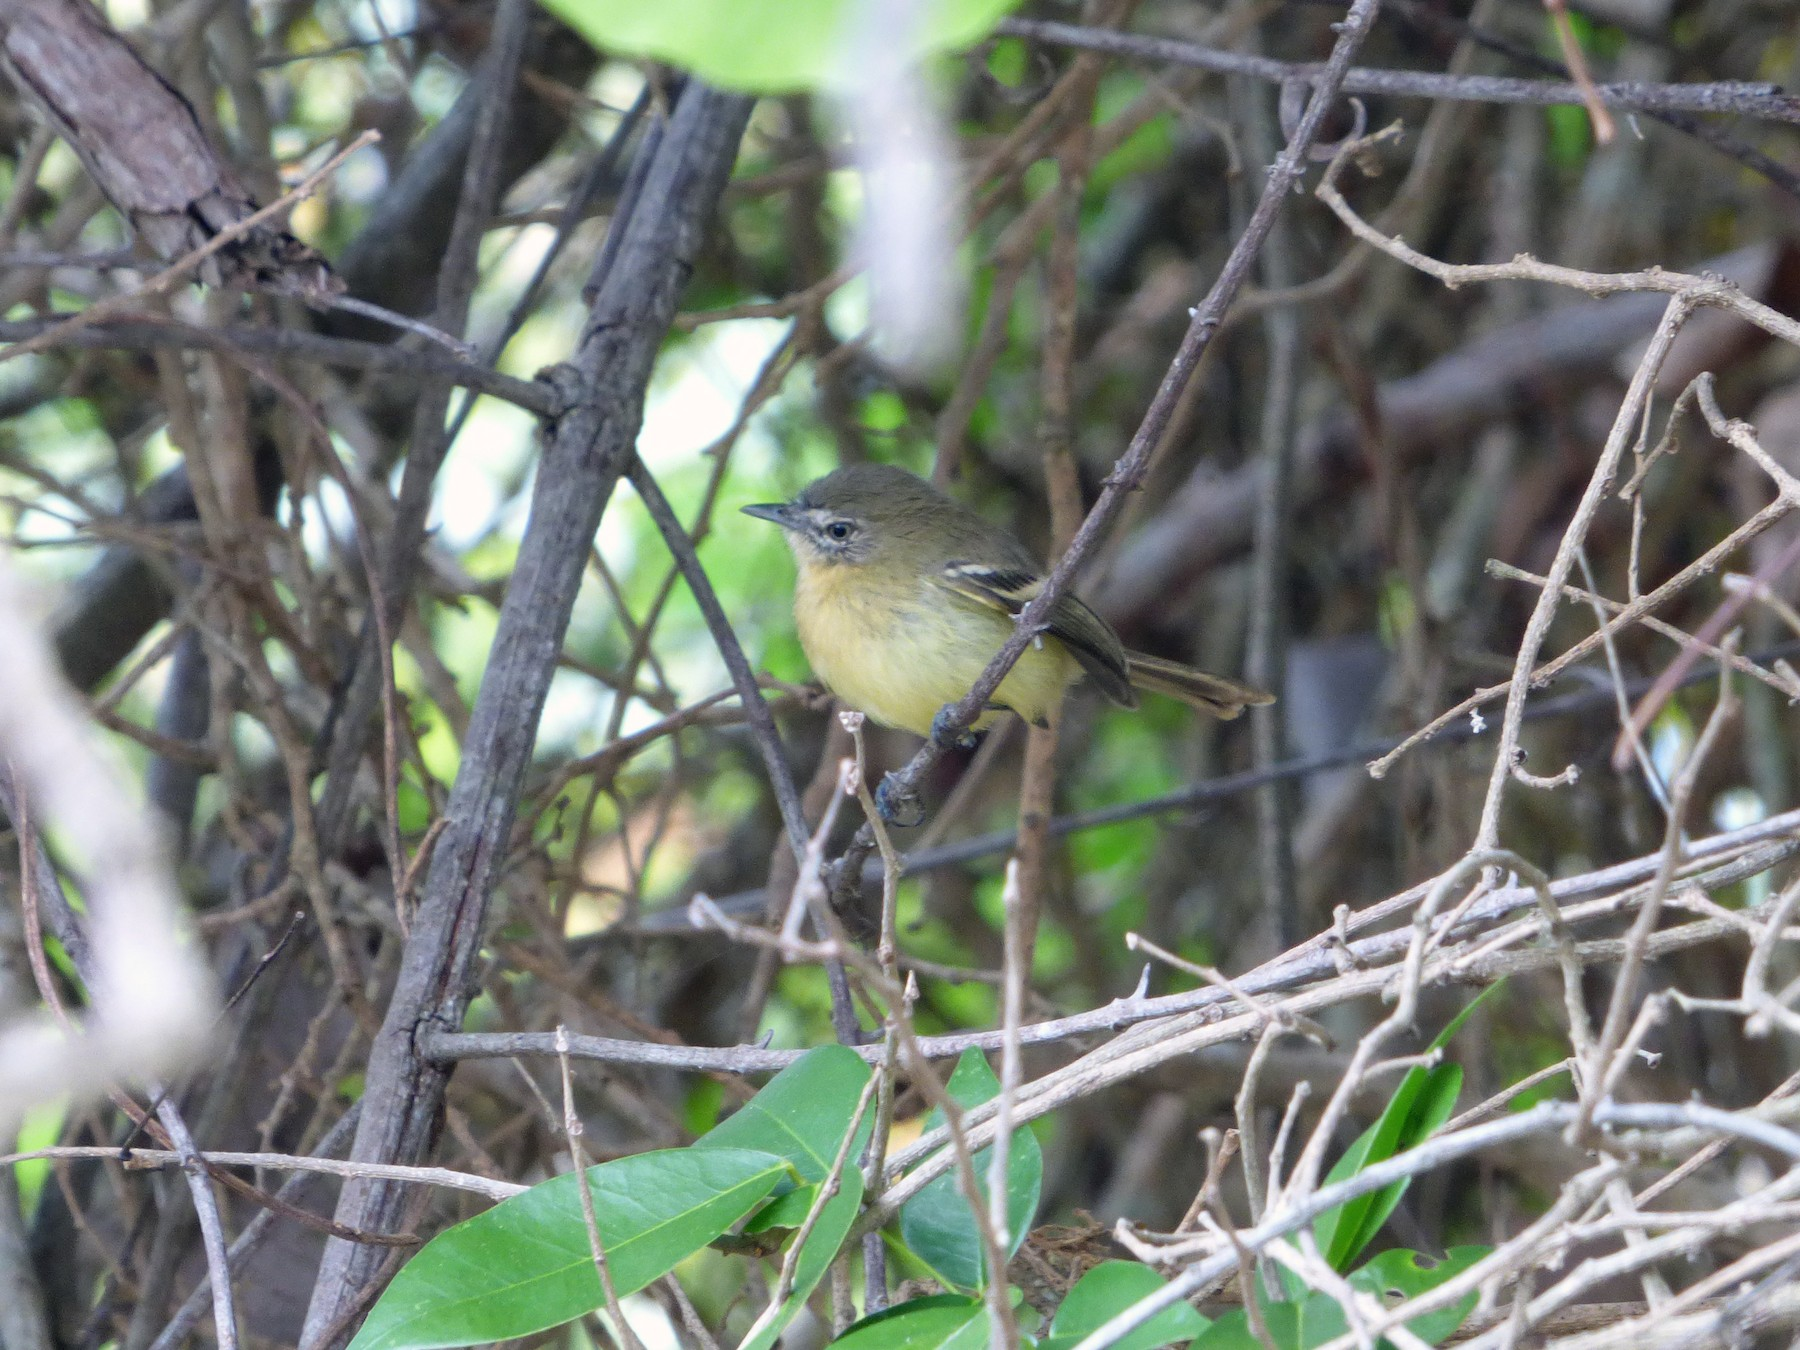 Pale-tipped Tyrannulet - Bill Crins